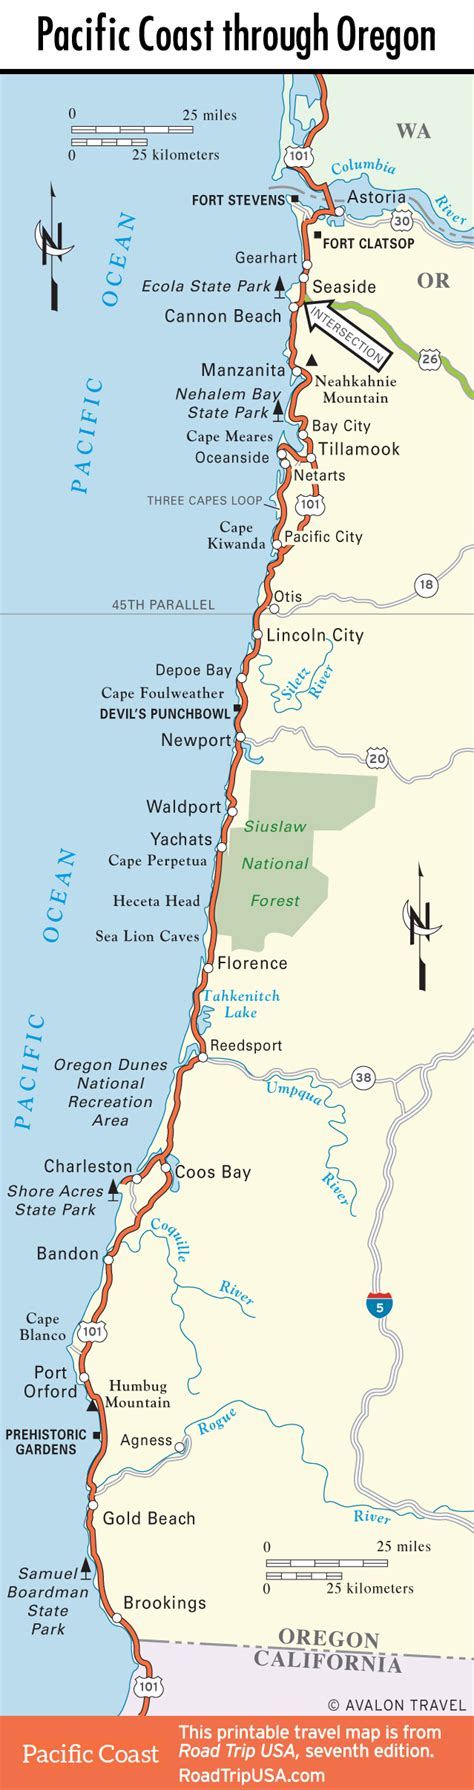 map of oregon and california coast pacific coast route oregon road trip usa